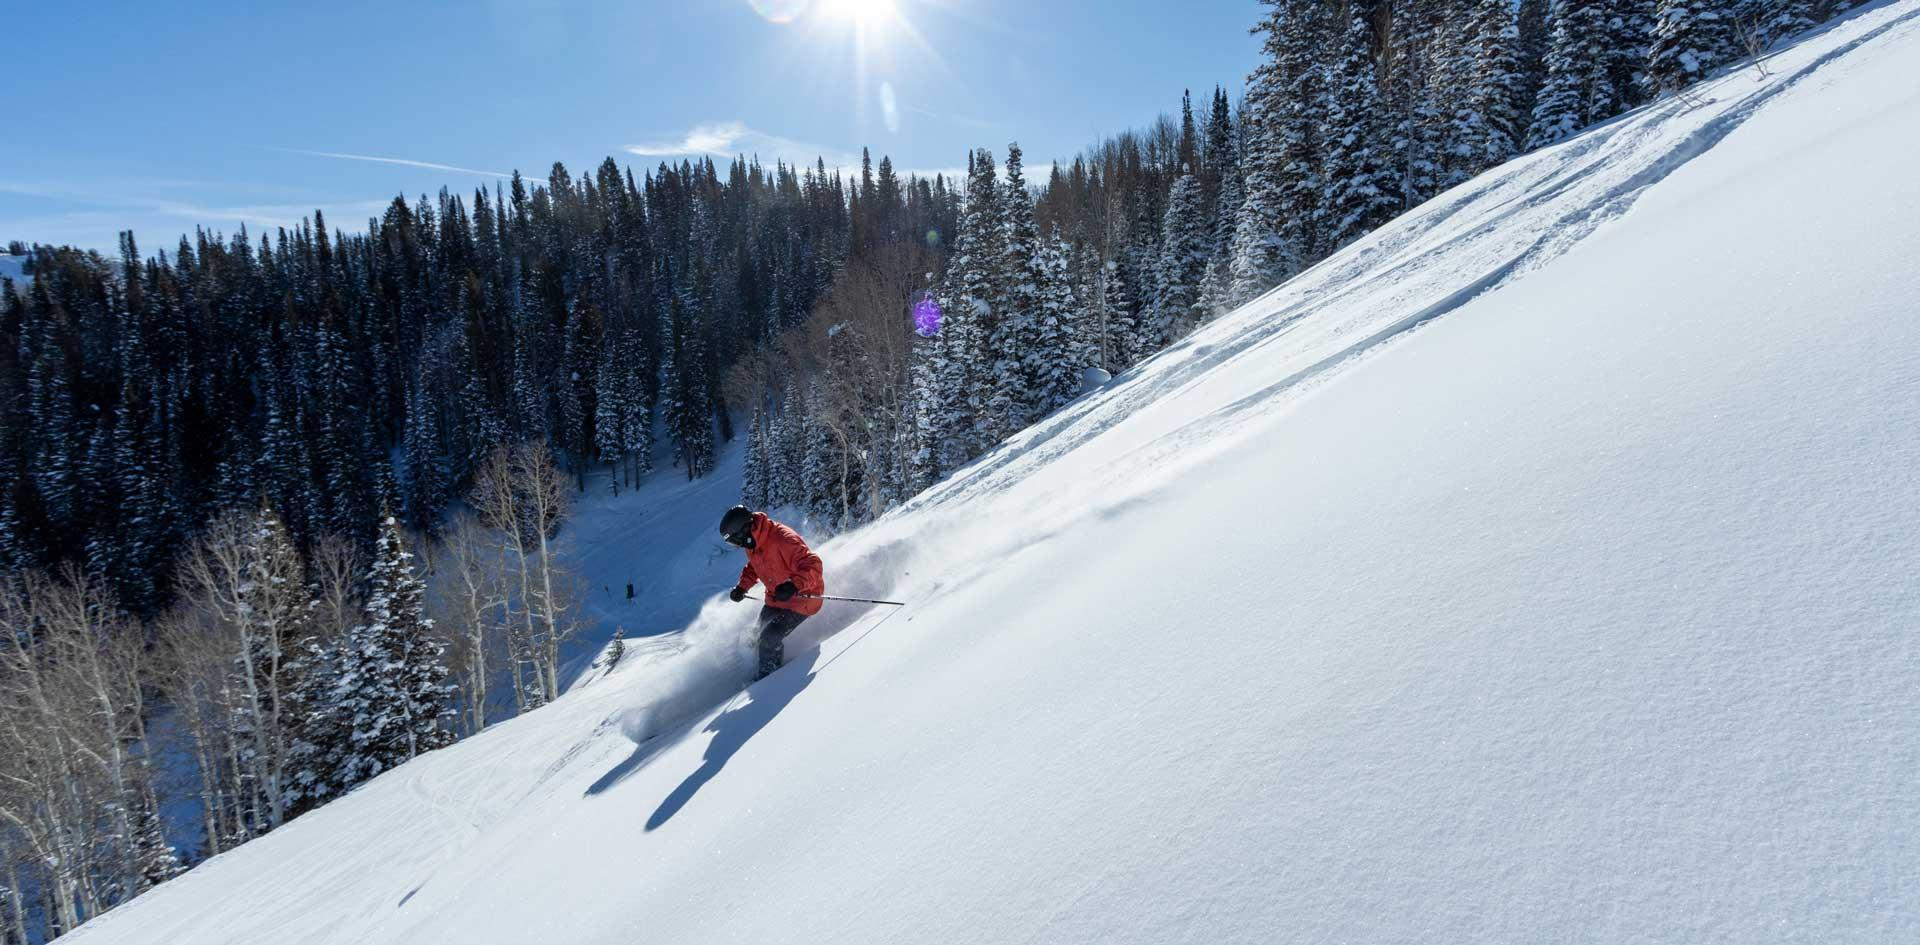 Jeff Walker Skiing in Deer Valley, UT